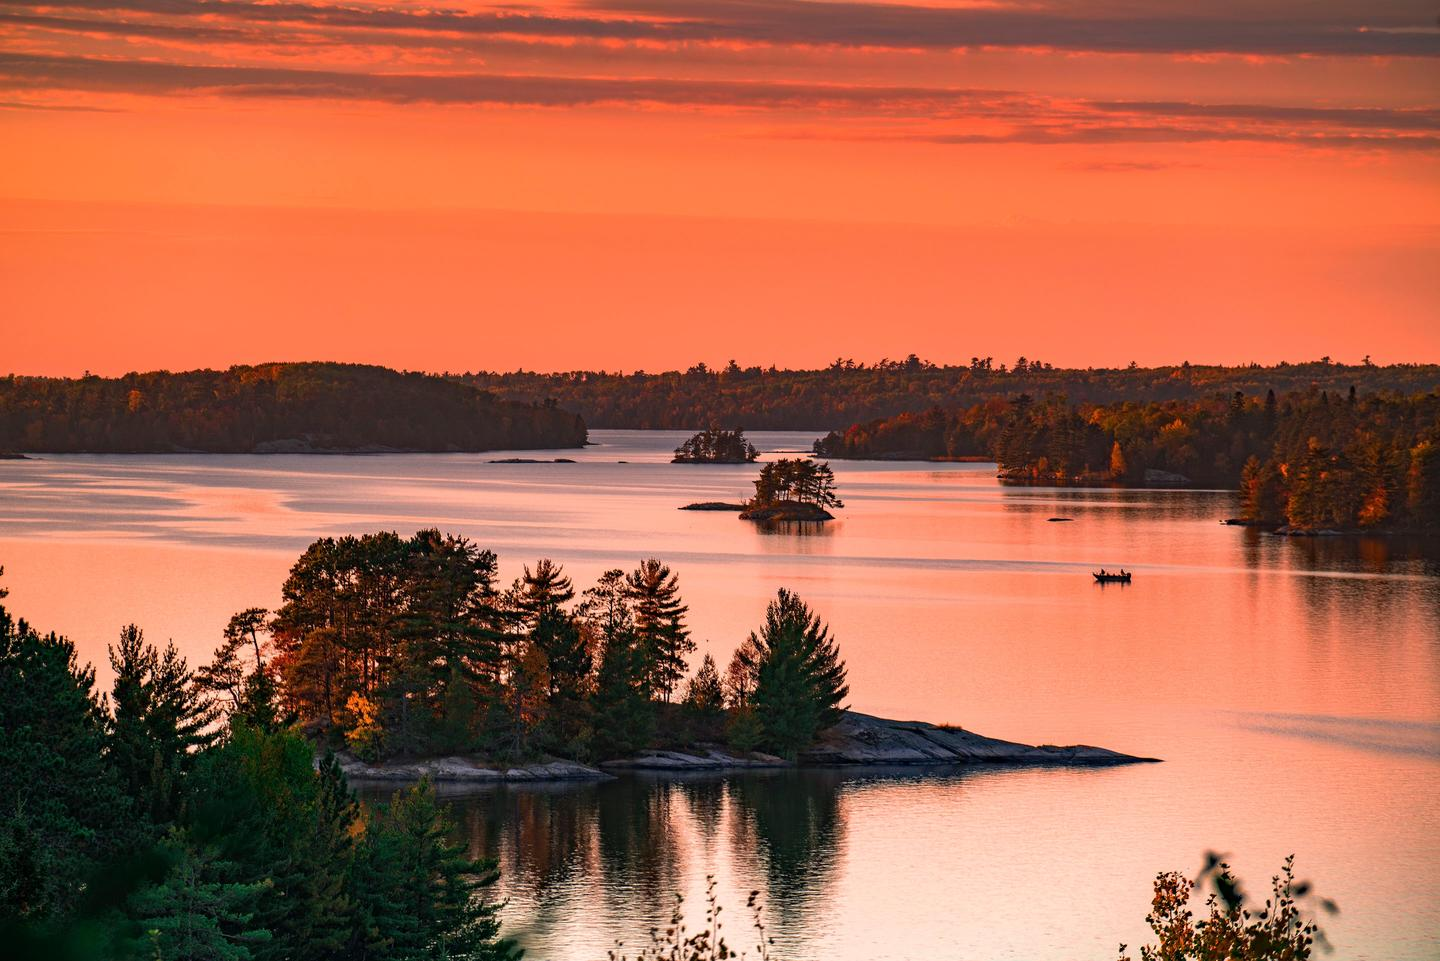 Sunset in VoyageursEnjoy a sunset in Voyageurs National Park.